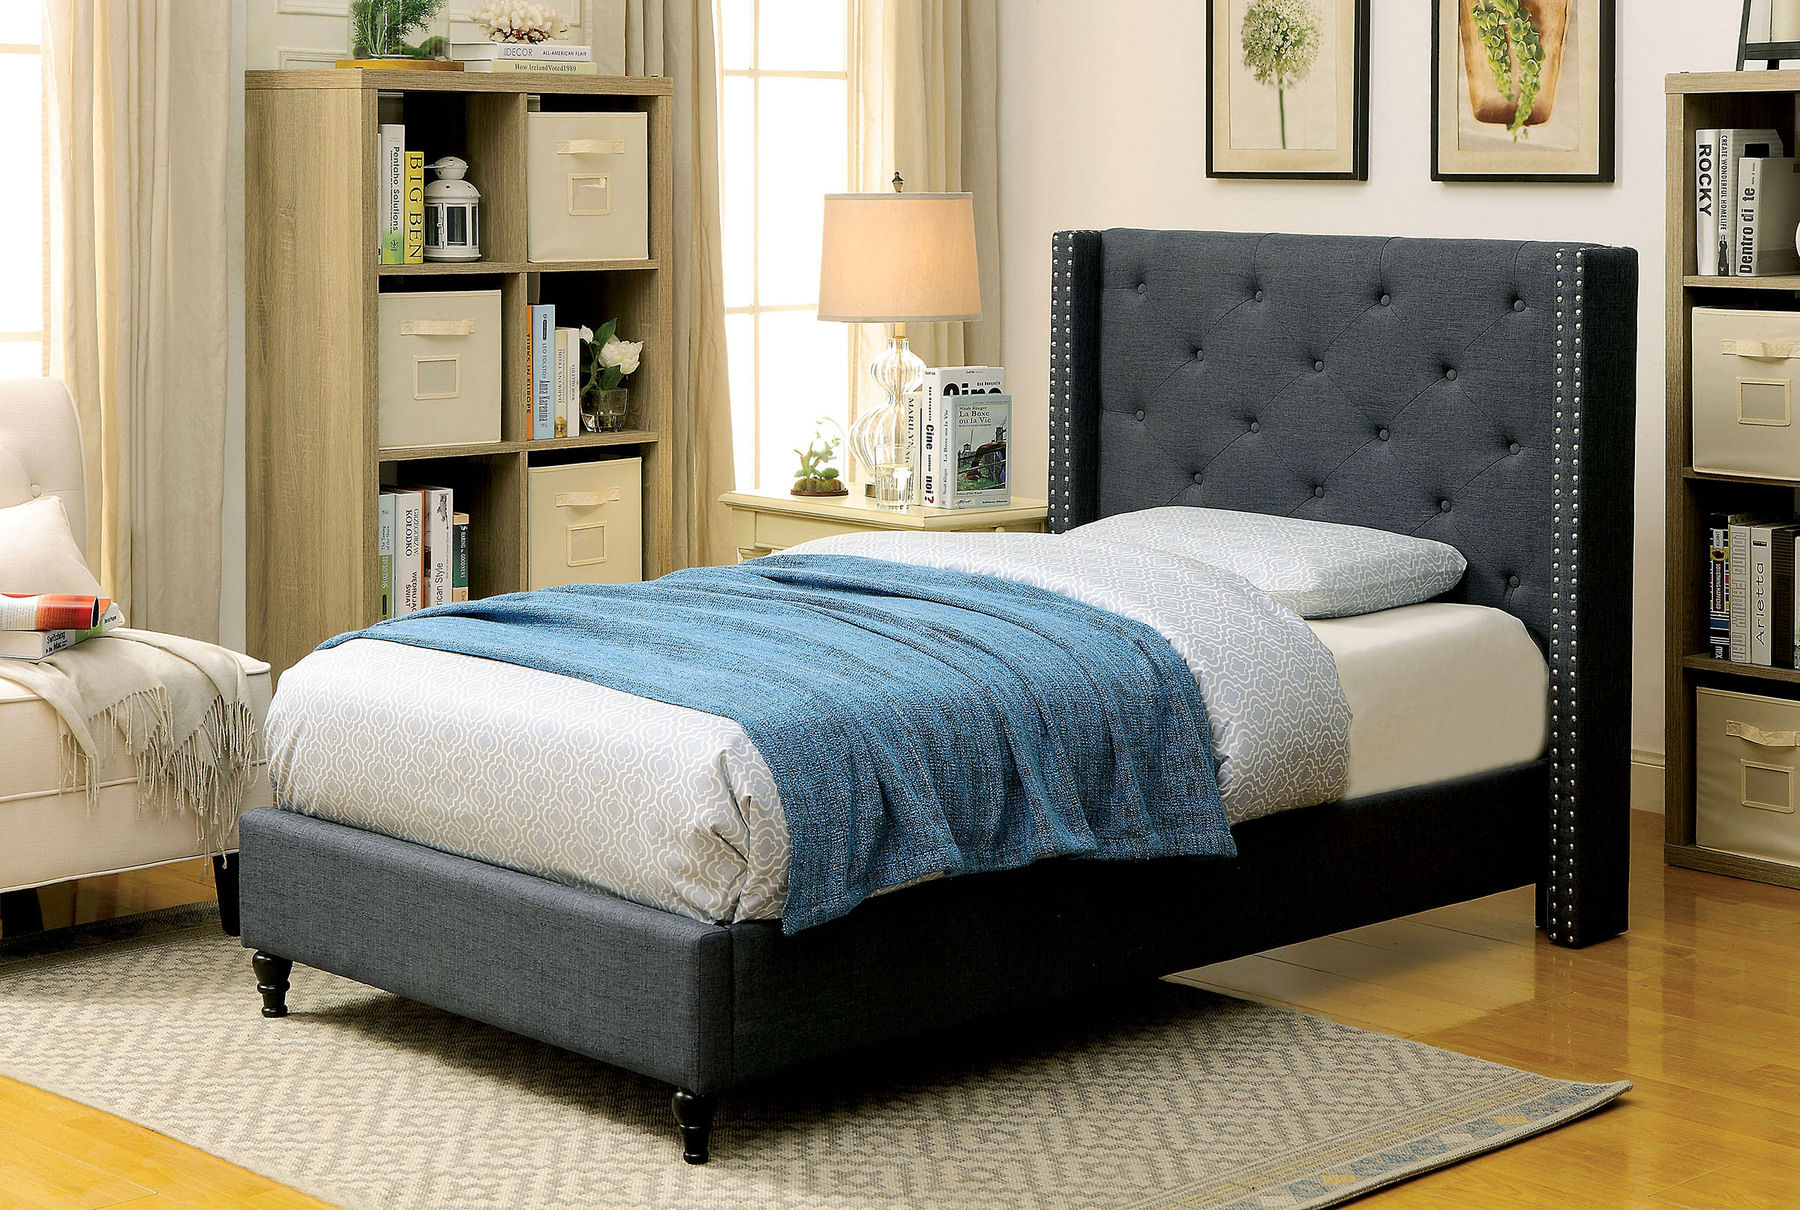 Annabelle Blue Twin Size Bed Cm7677bl Furniture Of America Twin Size Beds Comfyco Furniture